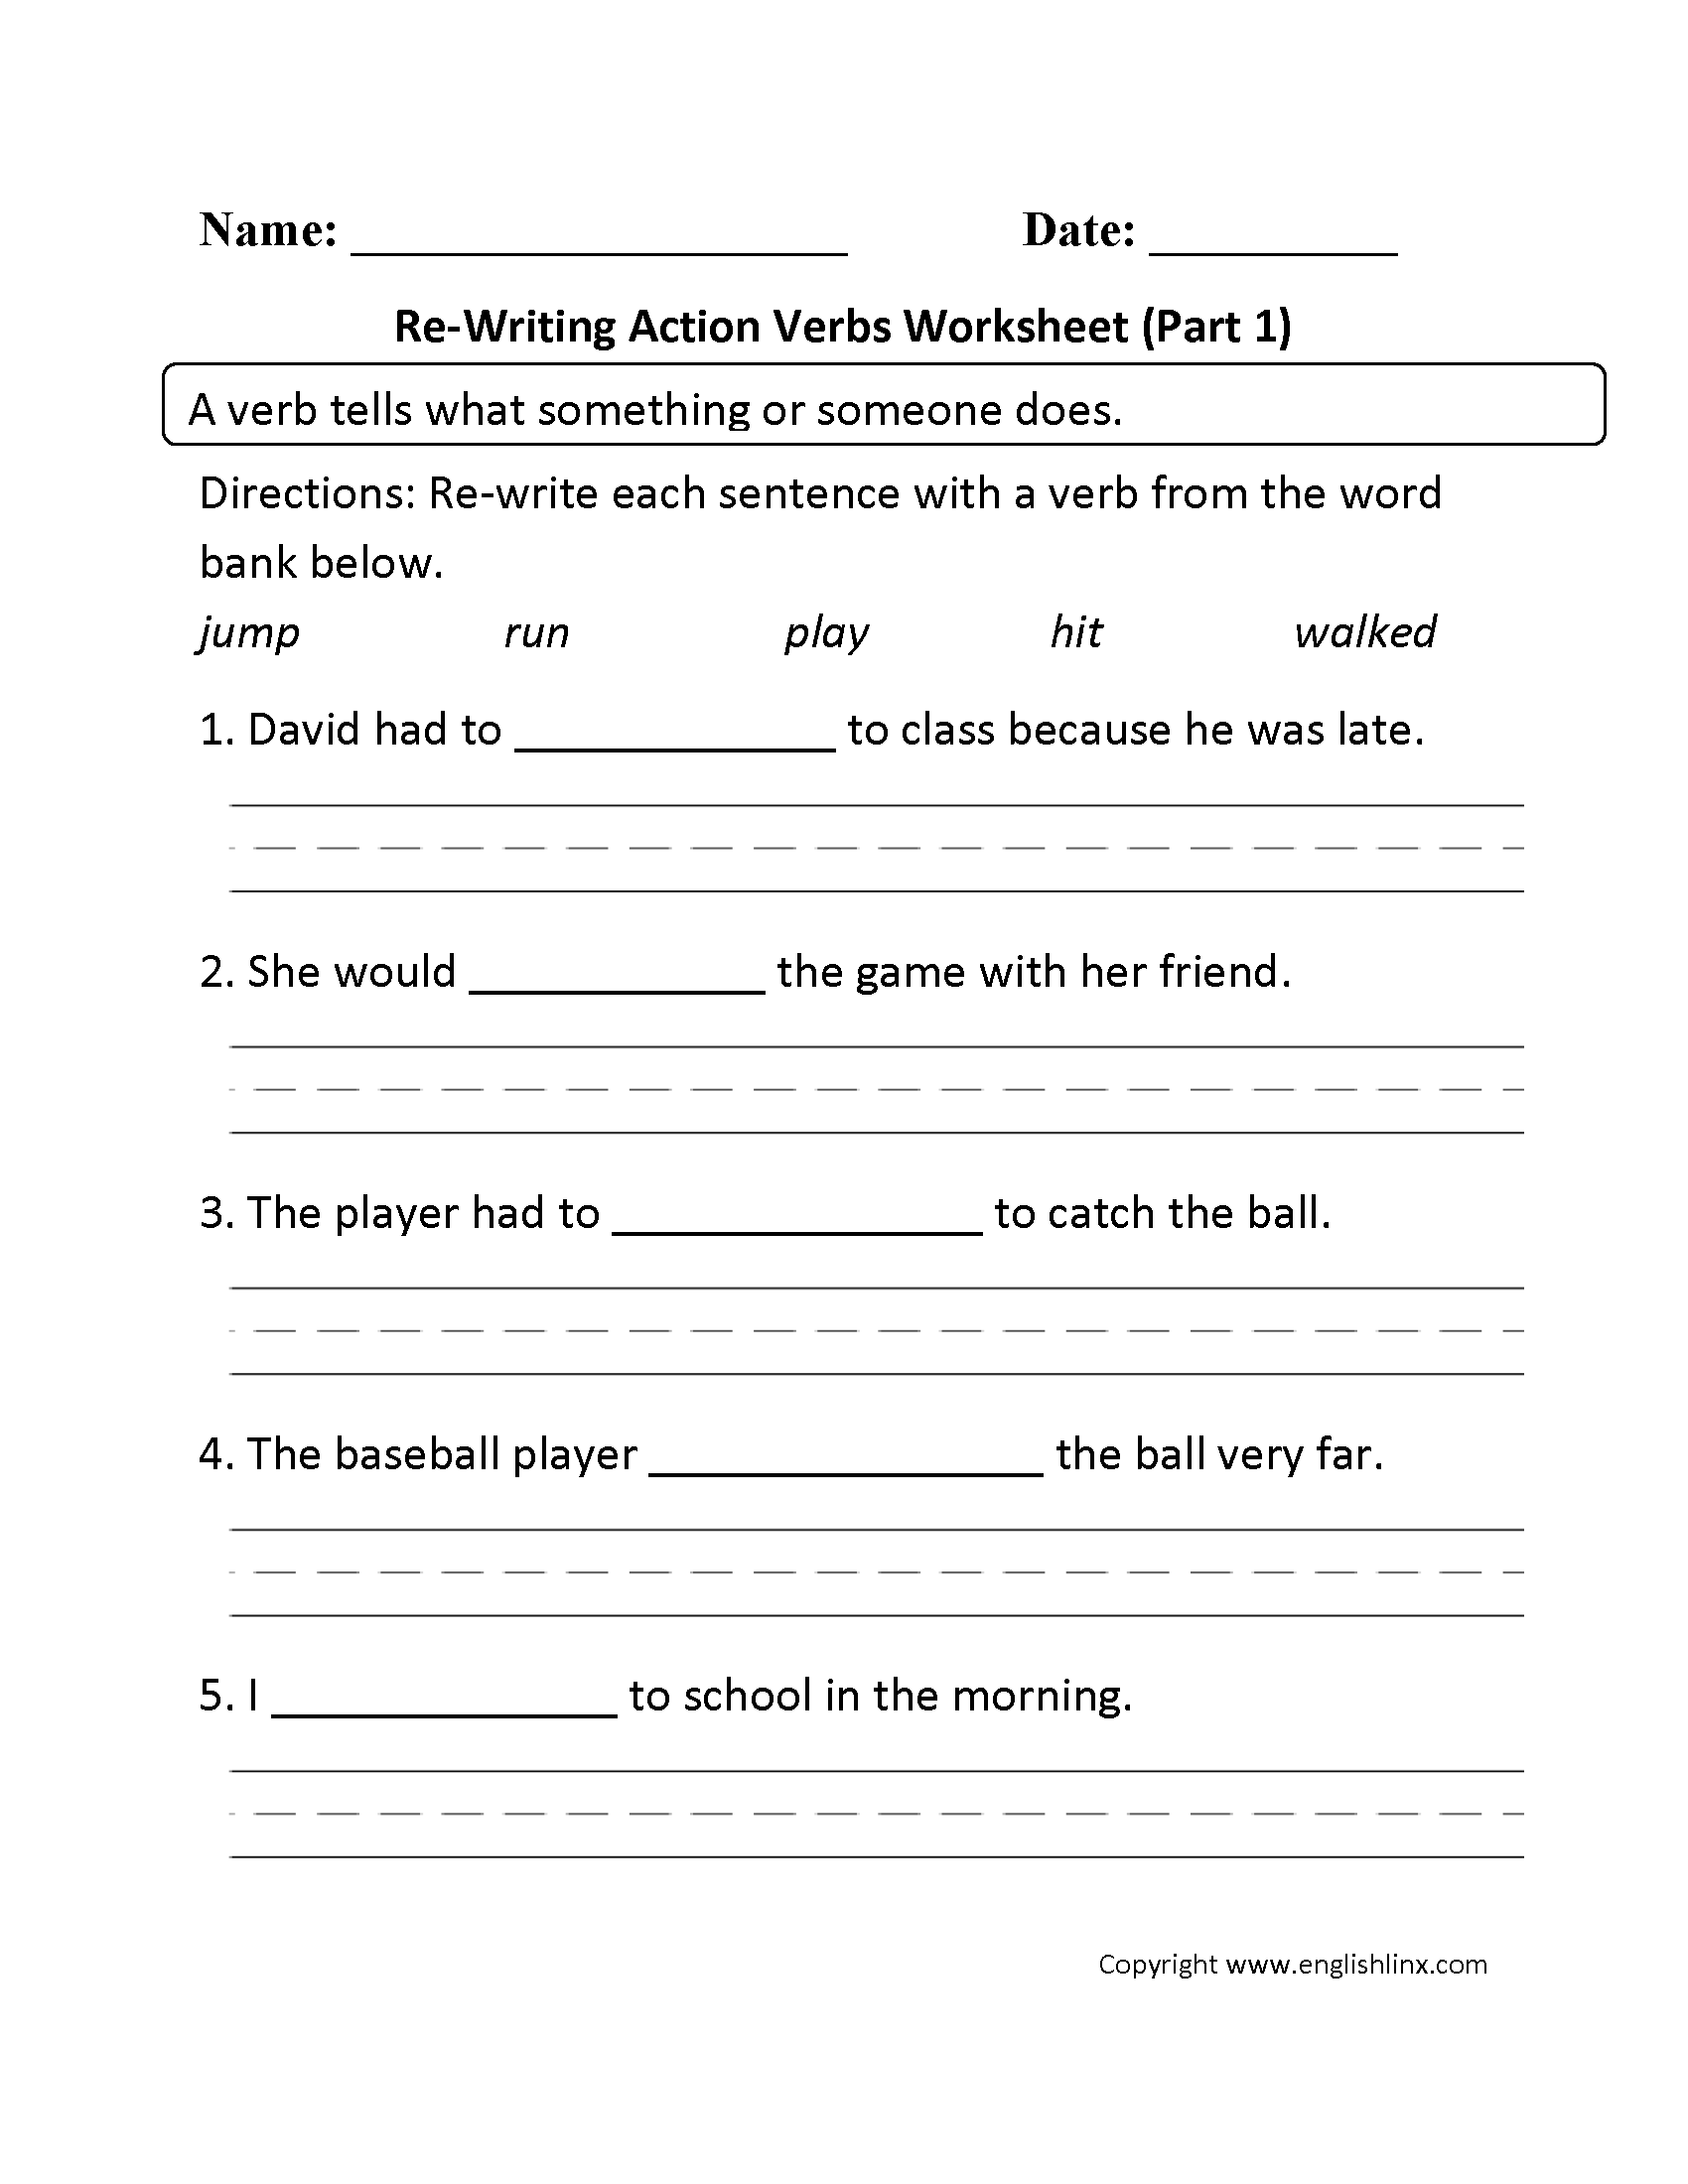 Worksheets Verbs Worksheets re writing action verbs worksheet part 1 first grade pinterest 1